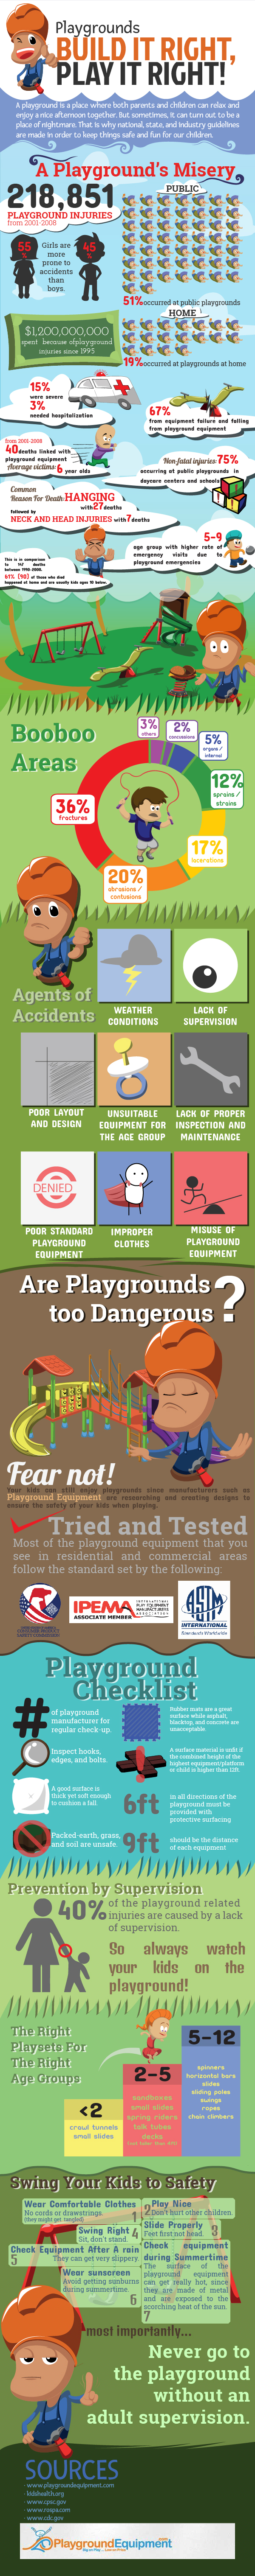 Playgrounds: Build It Right, Play It Right!